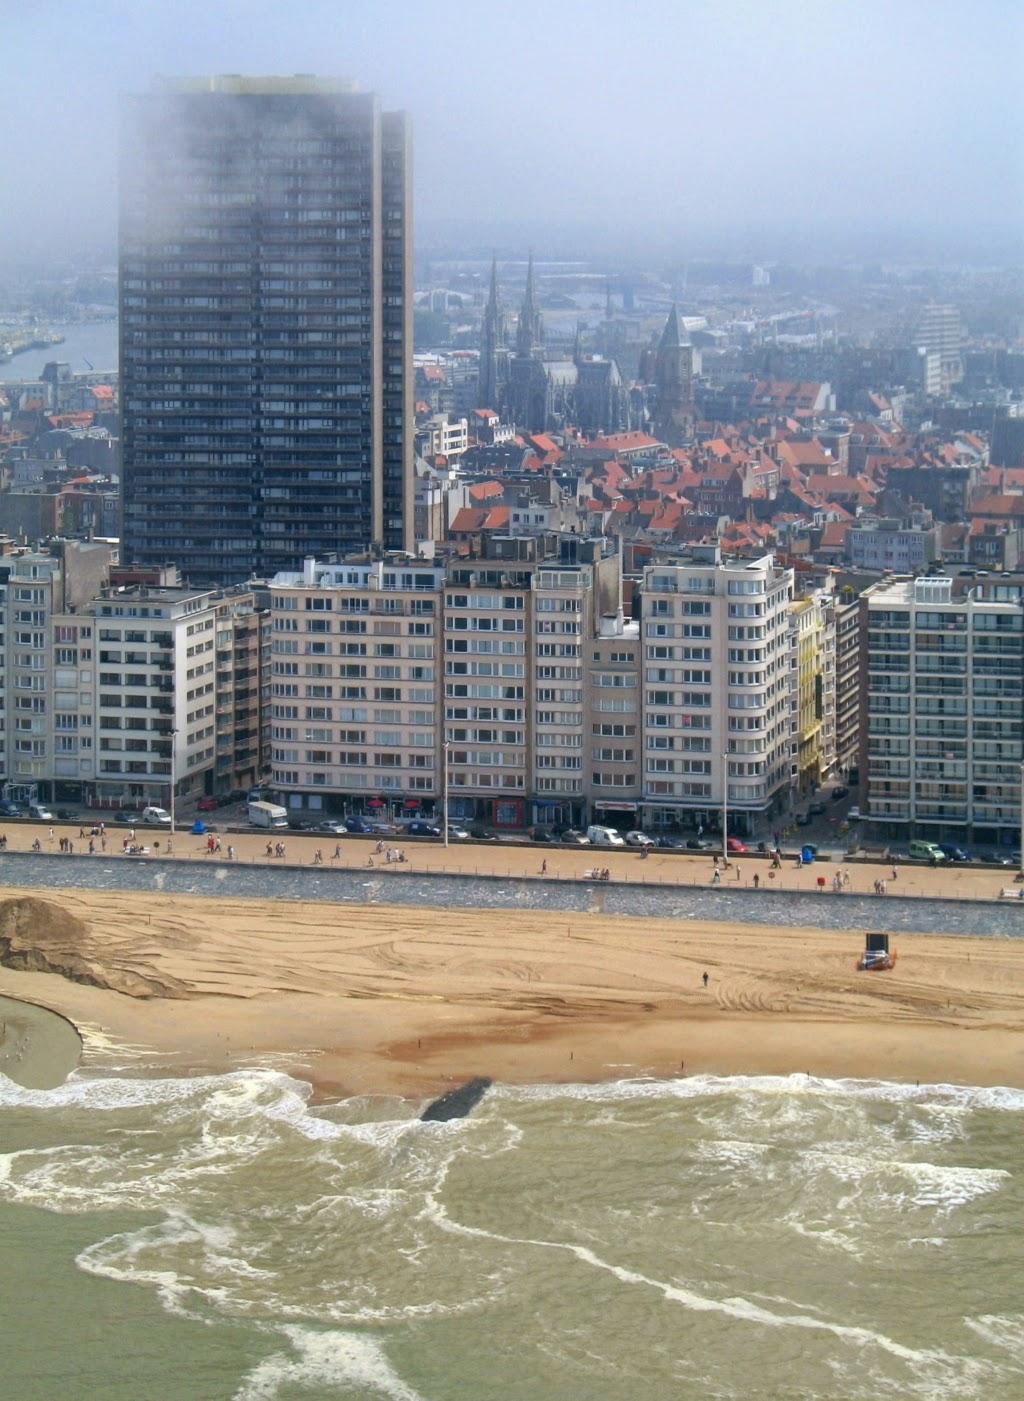 10 Best Places to Holiday in Belgium (100+ Photos) | Beach, seafront and Europacenter building